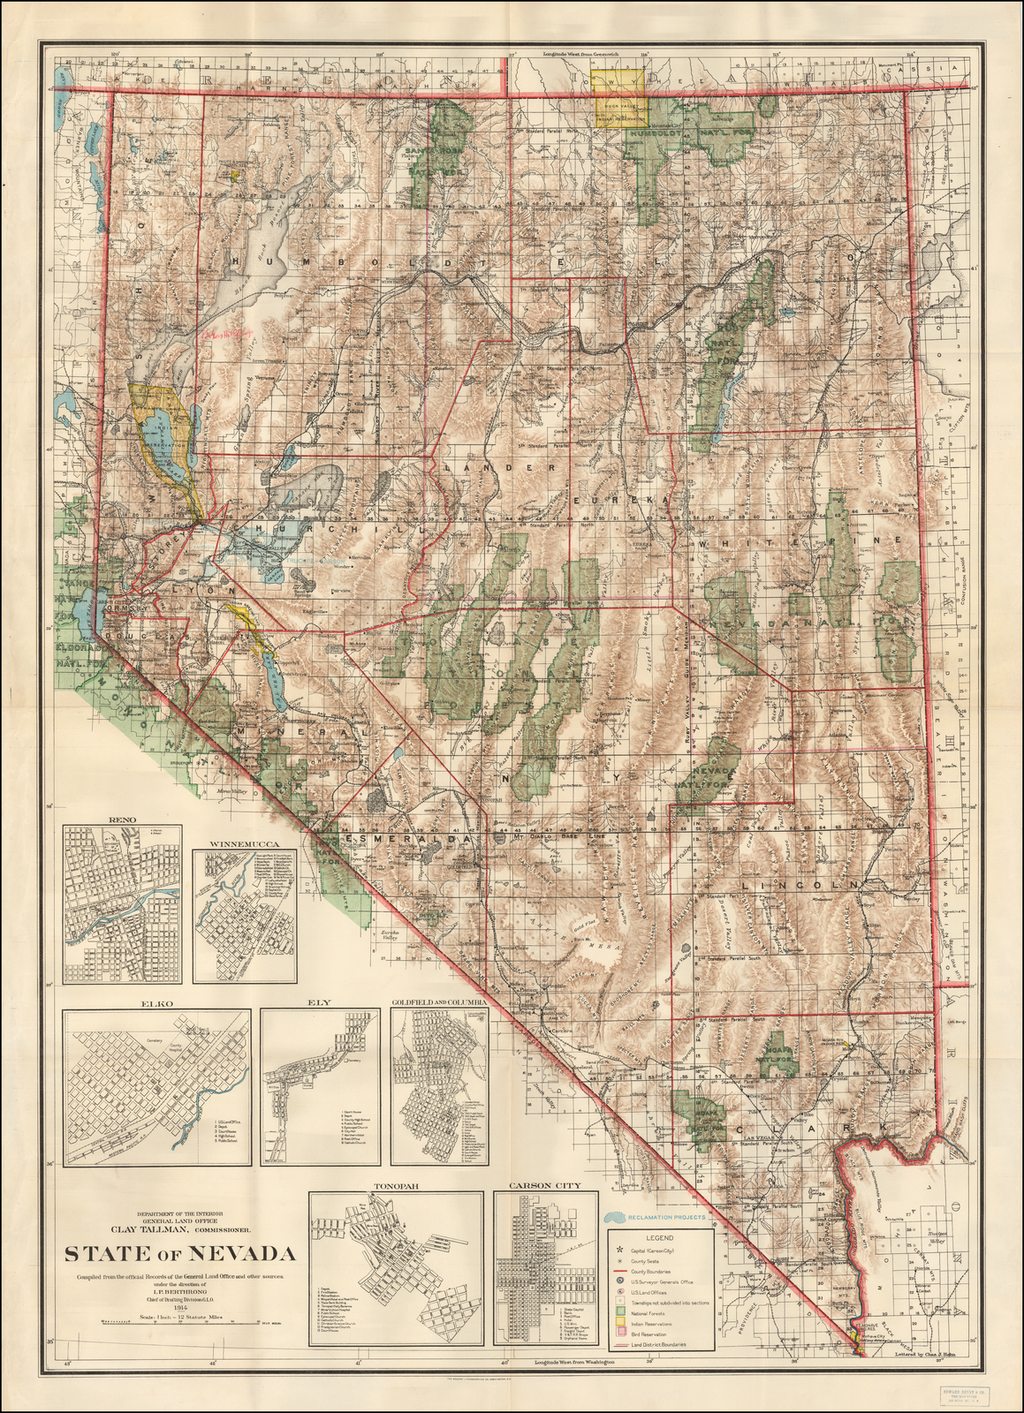 State of Nevada Compiled from the official Records of the General Land Office and other sources . . . 1914 By U.S. General Land Office